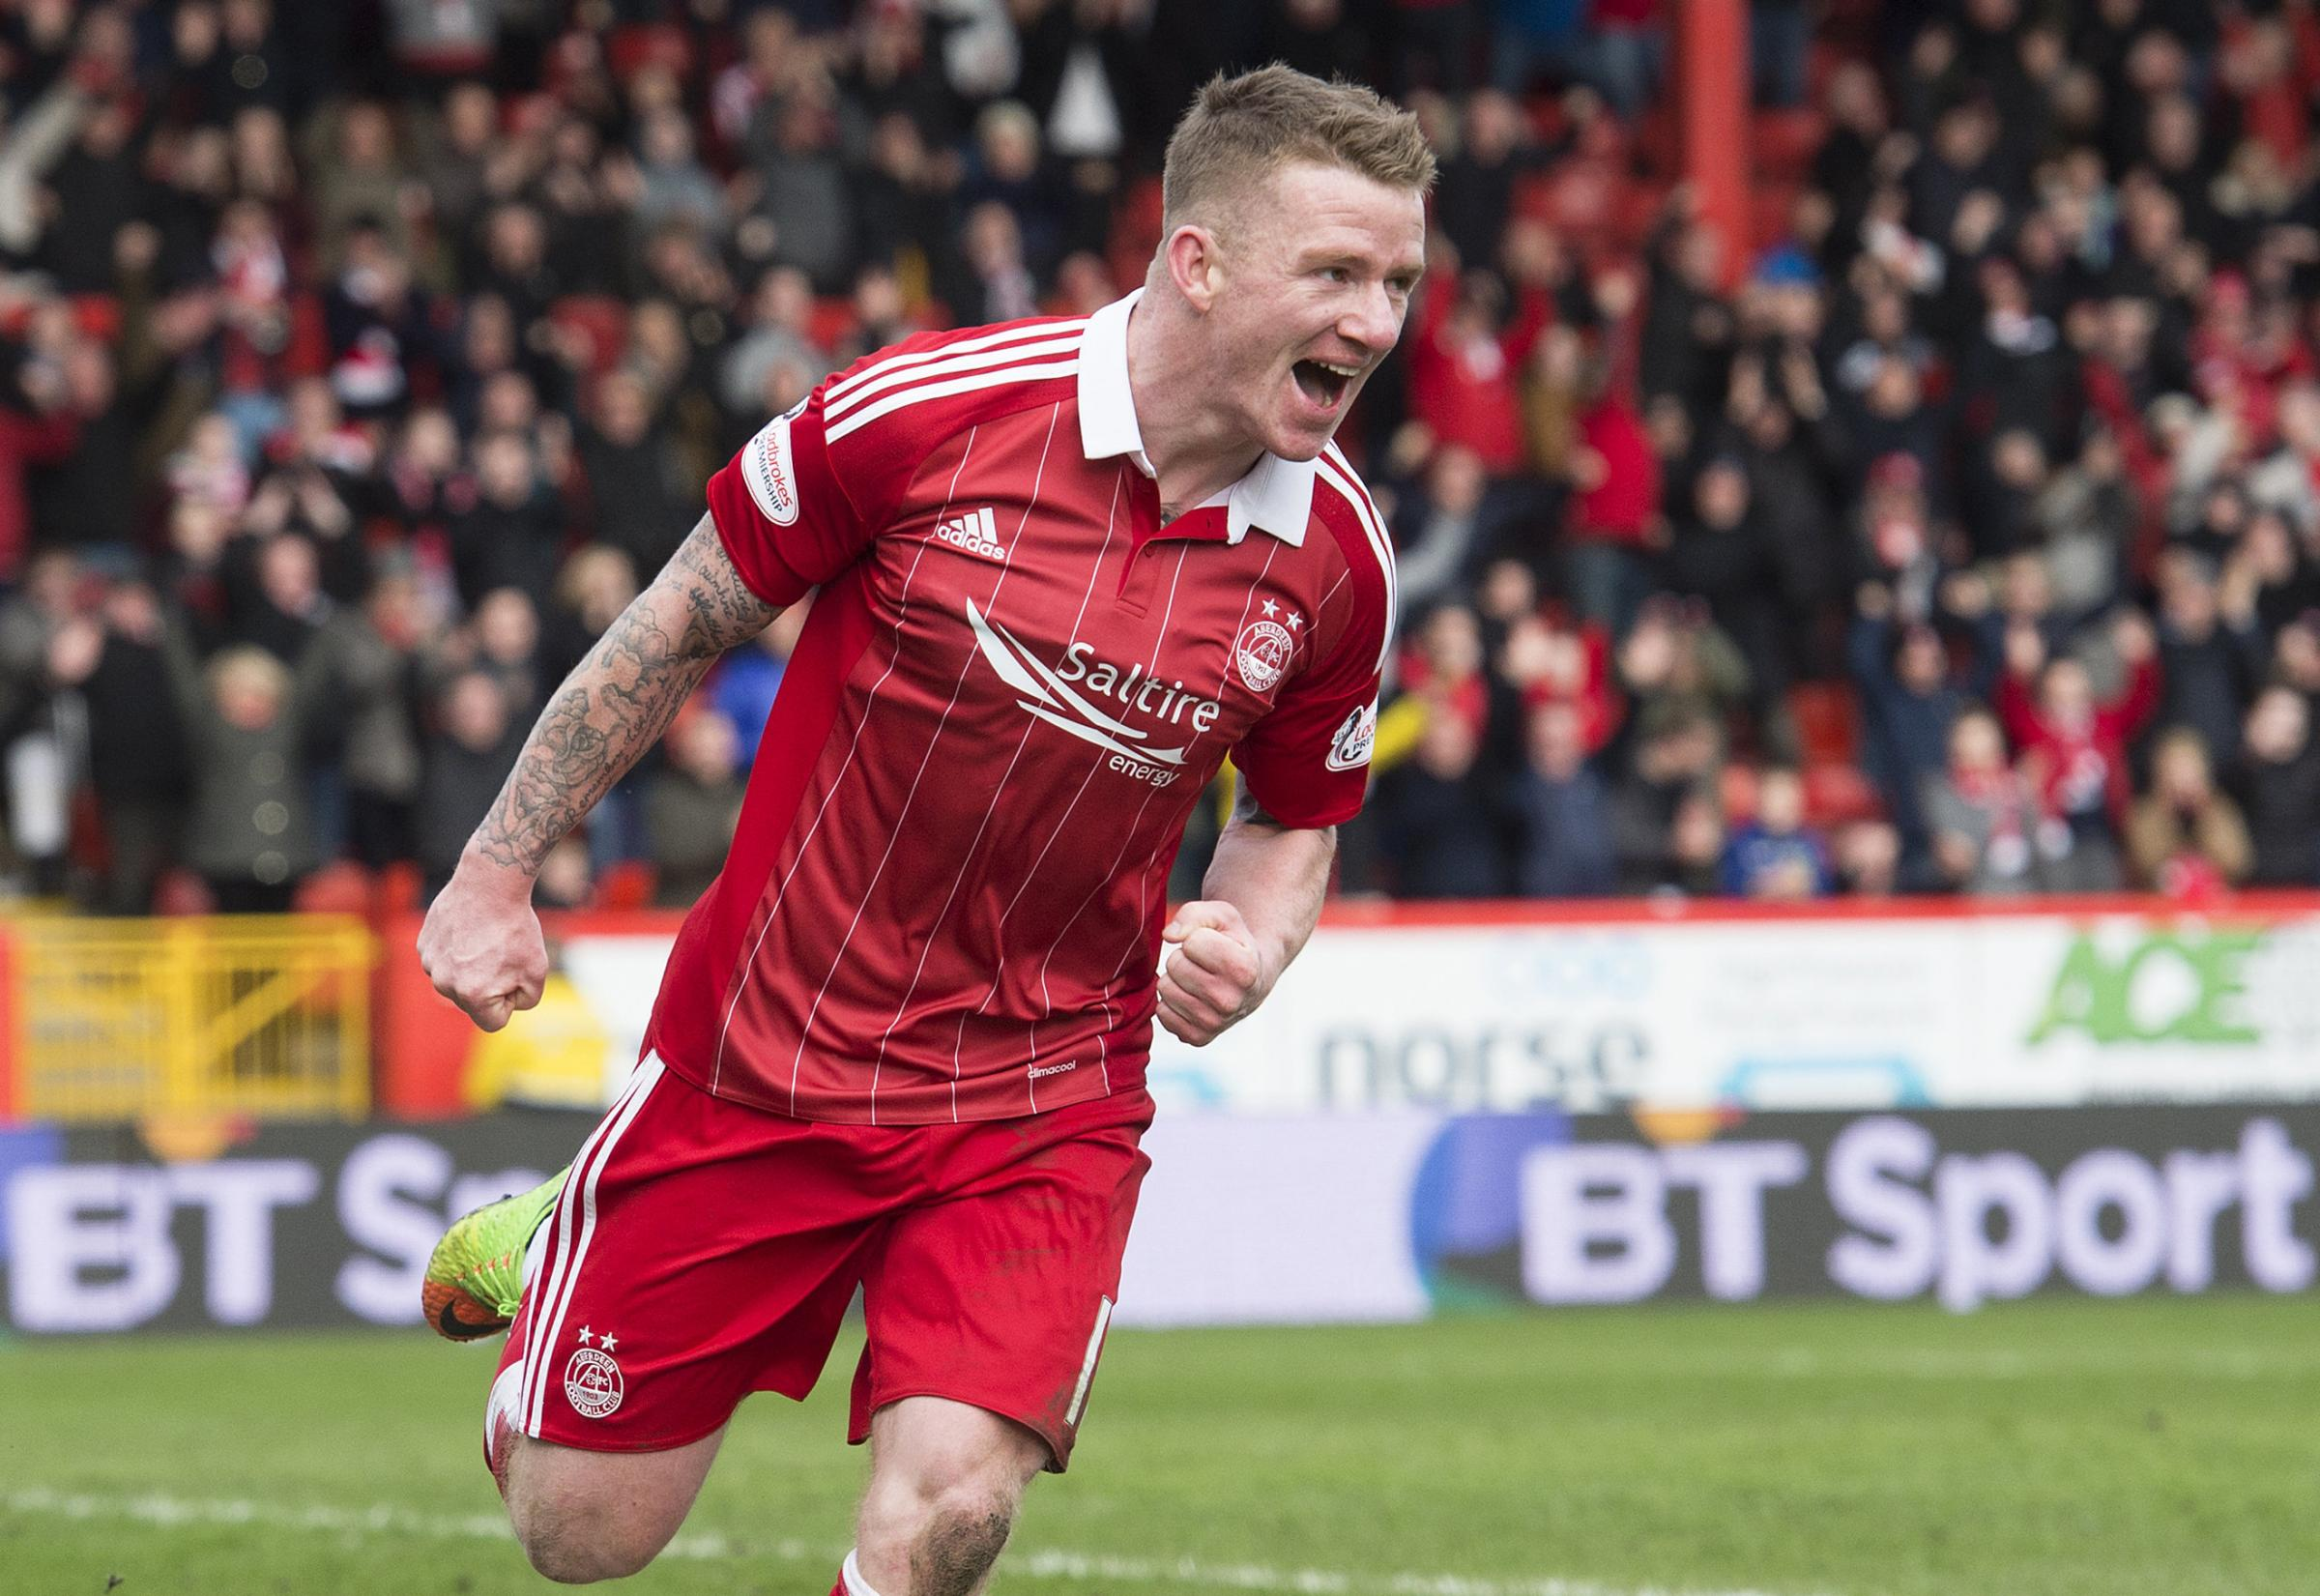 Celtic sign winger Jonny Hayes from Aberdeen